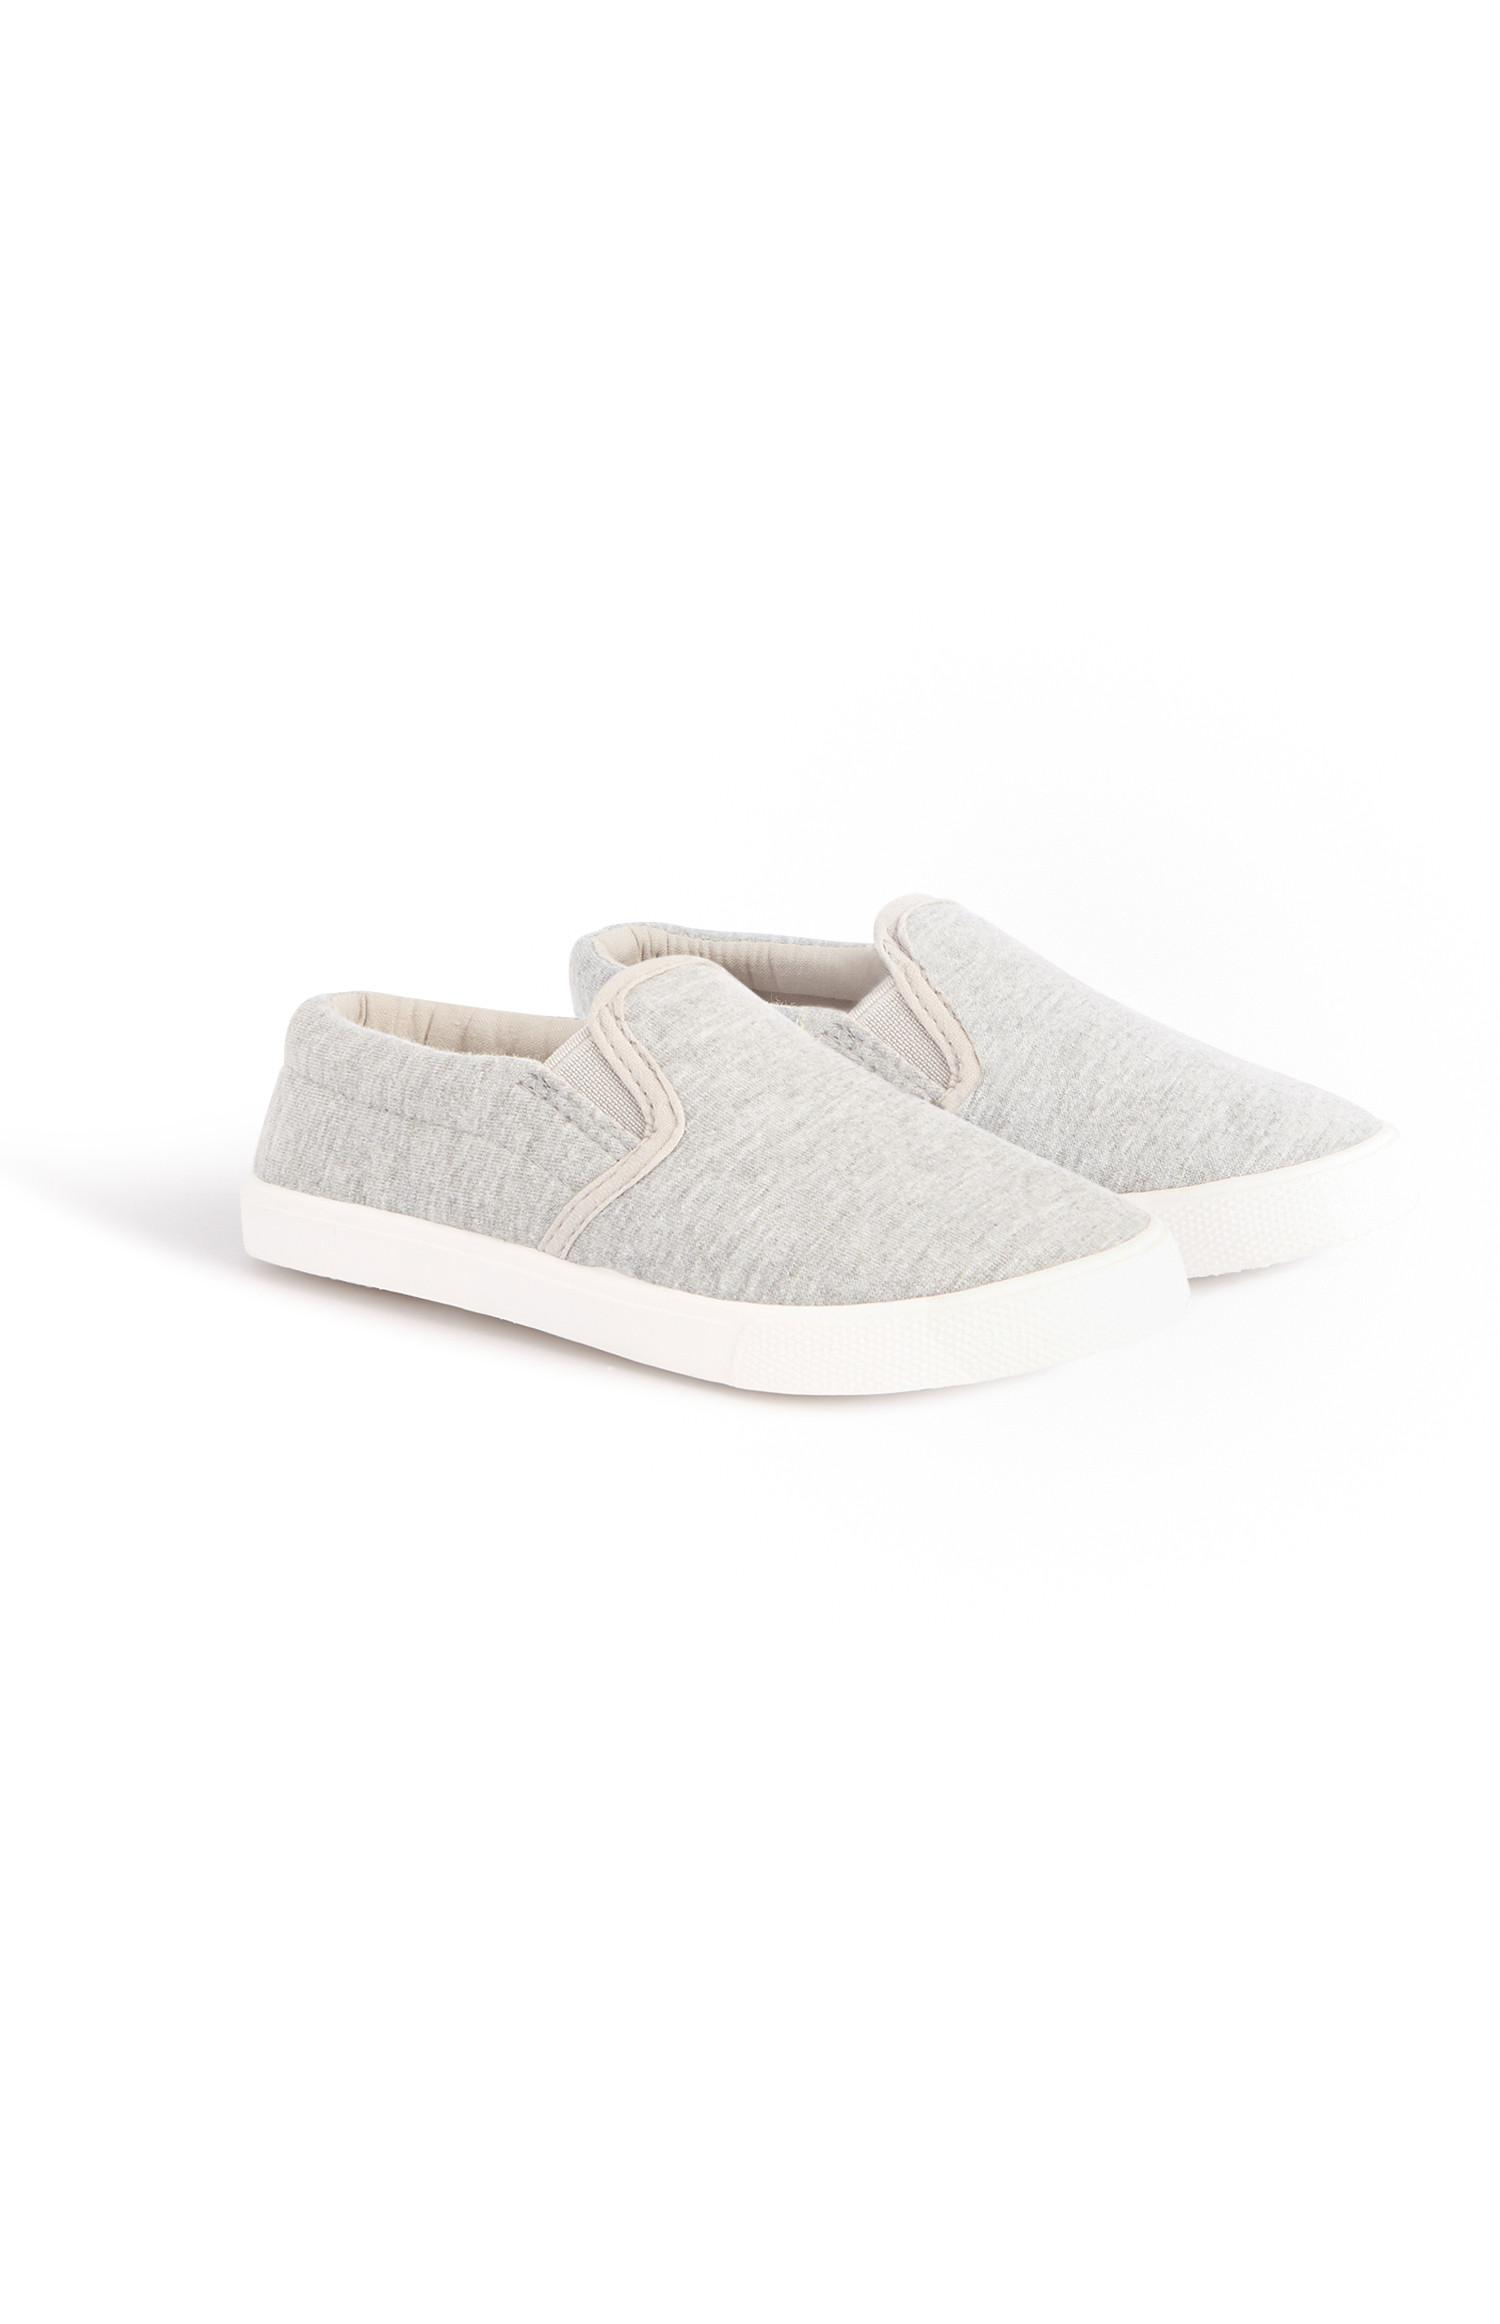 Younger Boy Slip On Shoe